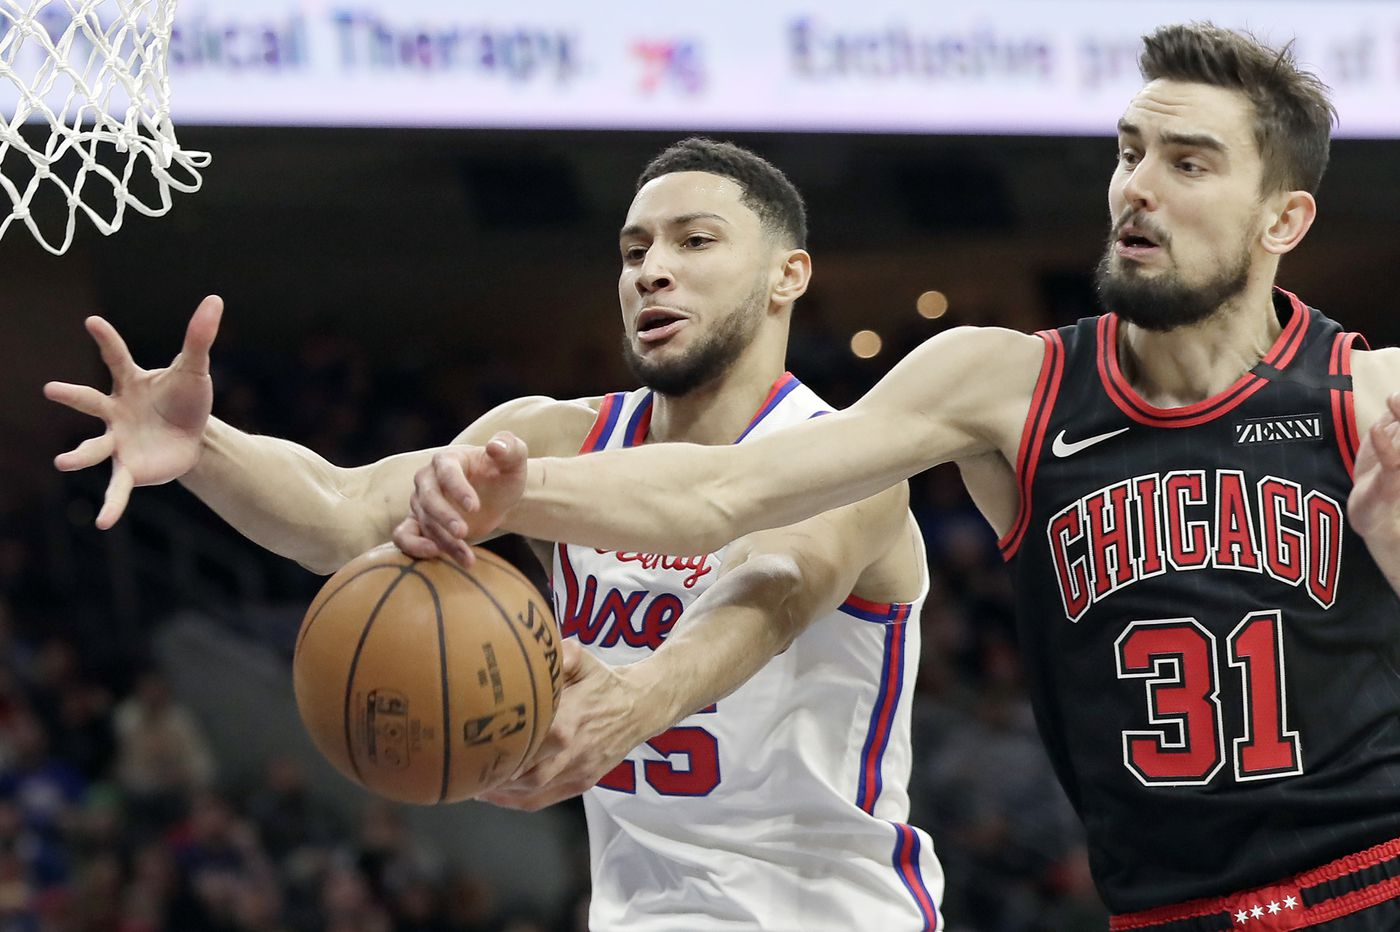 Ben Simmons was a force near the basket in the Sixers' win over the Bulls